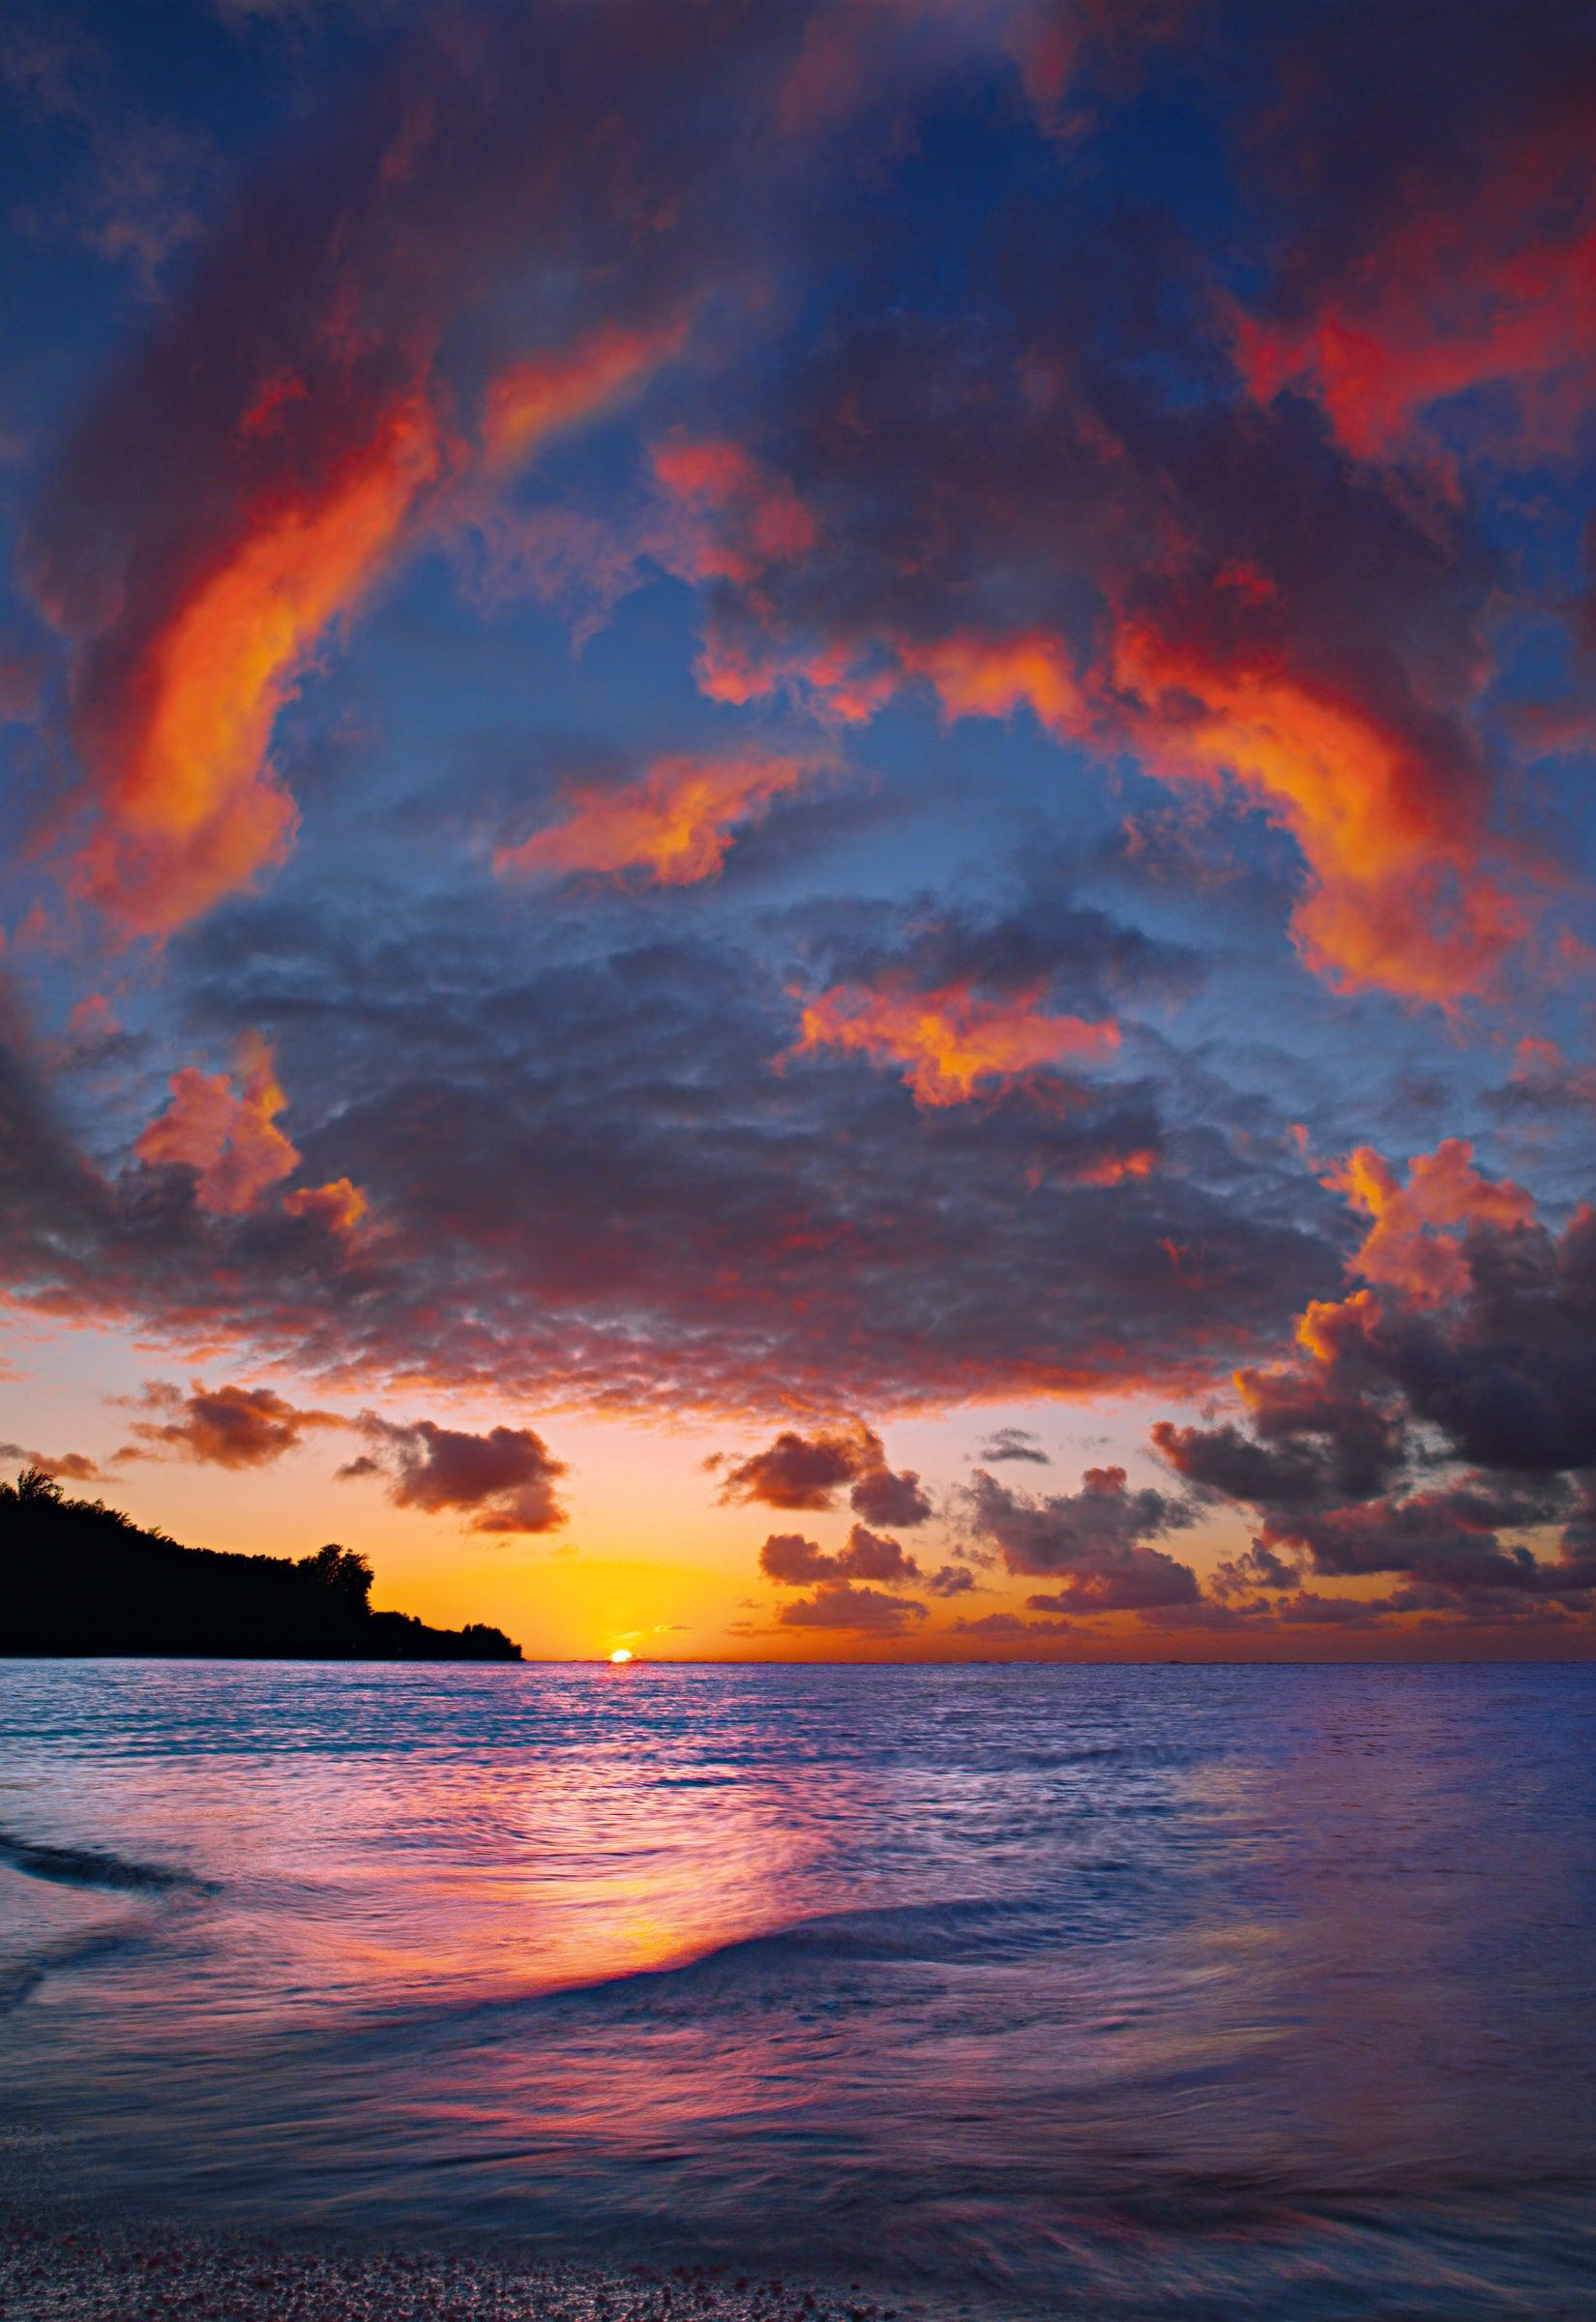 Swirl of clouds reflecting into the Hawaiian ocean at sunset with the cliffs of Na Pali Coast in the background